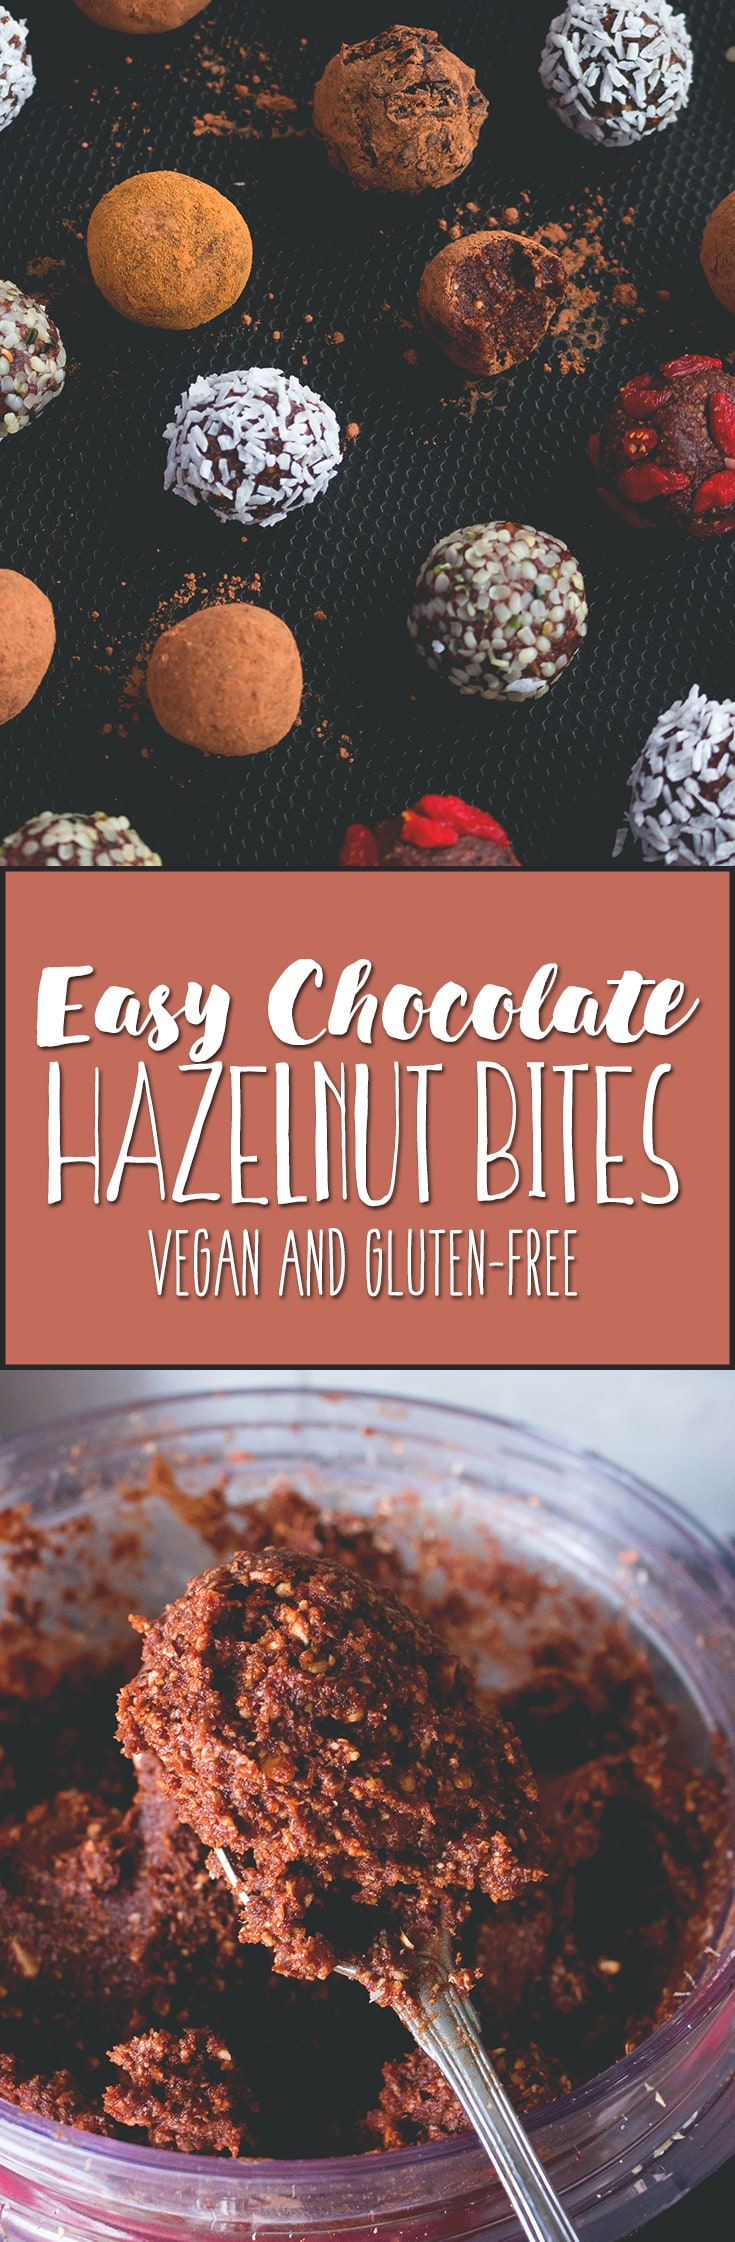 Chocolate Hazelnut Bites - sweet and chocolatey bliss balls, delicious any time of the year. A perfect snack for busy days. Vegan and absolutely heavenly! | thehealthfulideas.com